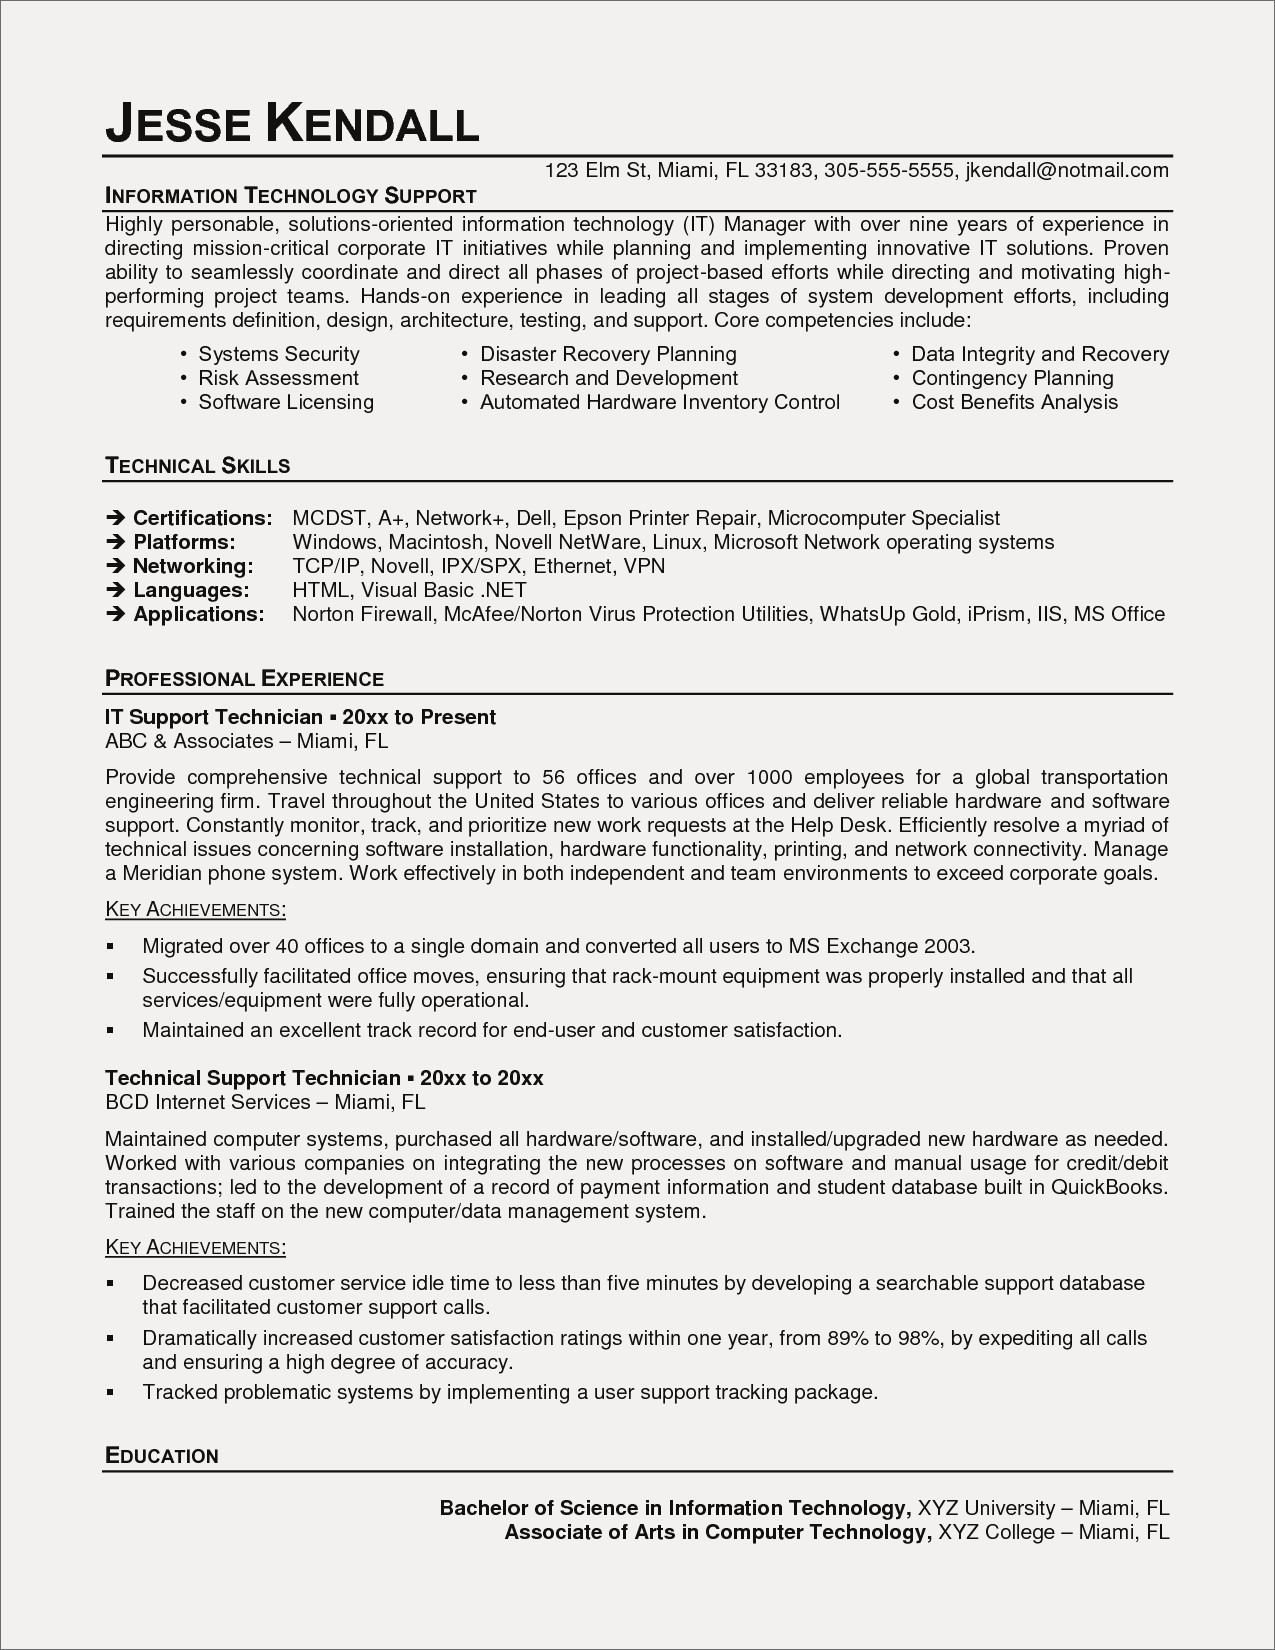 mechanic resume template example-Technician Resume Examples New Auto Mechanic Resume American Resume Sample New Student Resume 0d 12-d